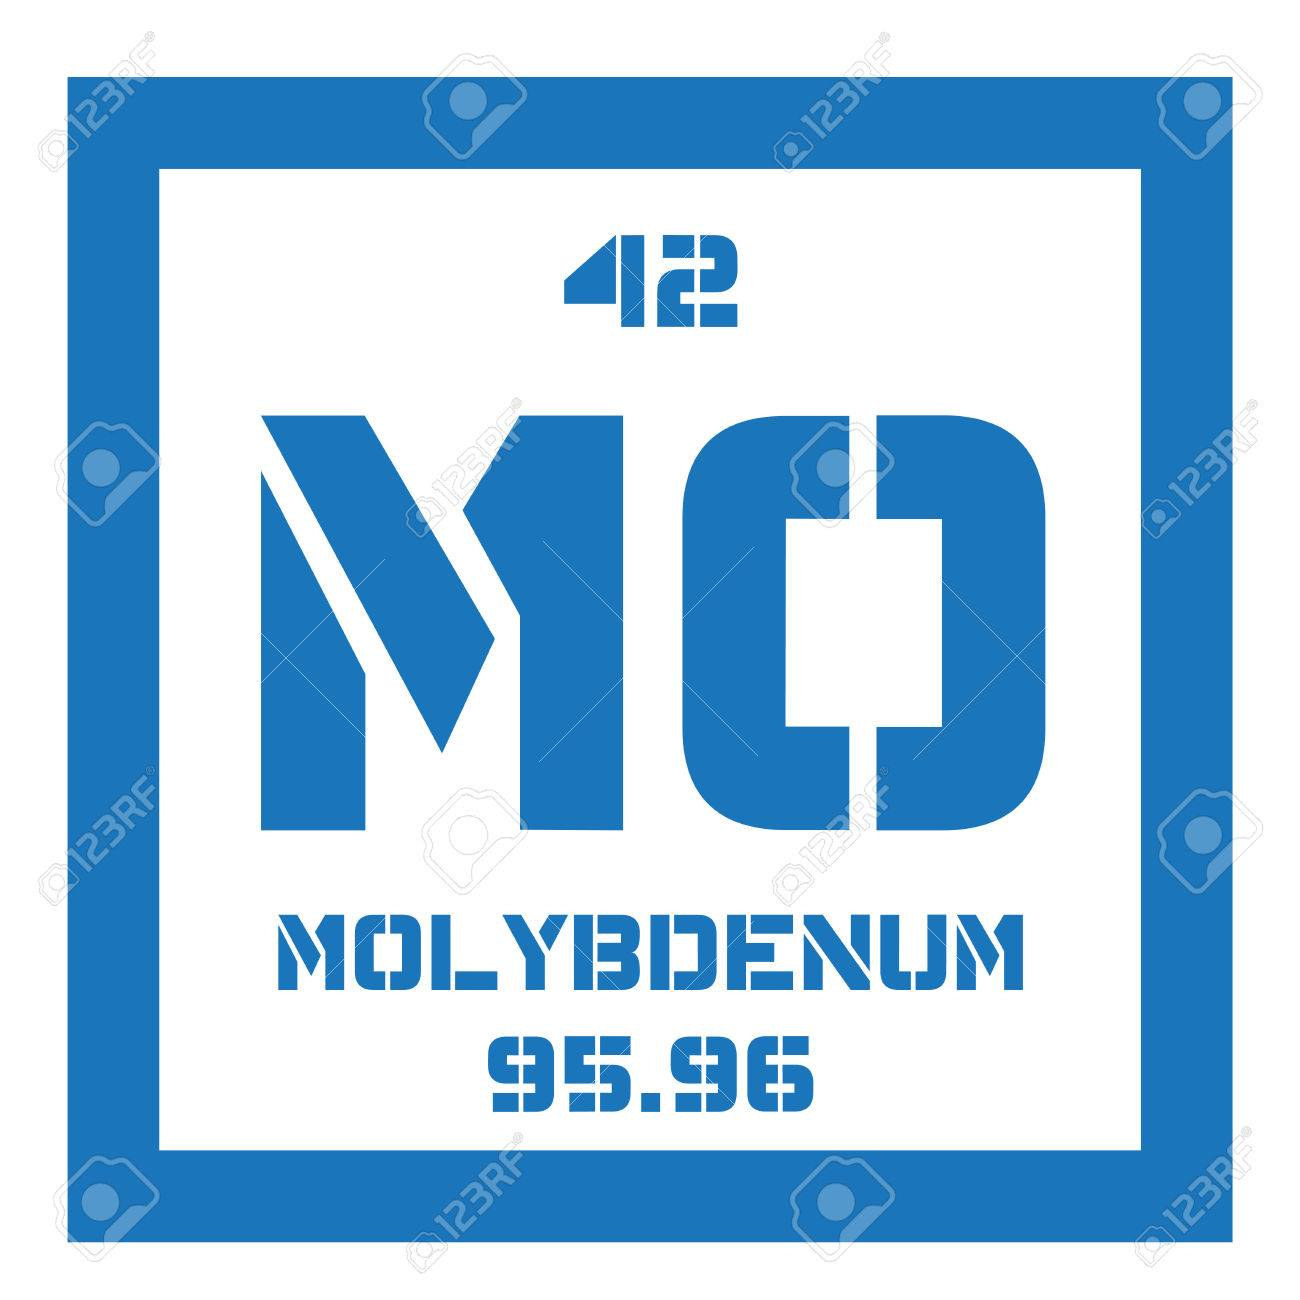 Molybdenum chemical element has sixth highest melting point chemical element of periodic table molybdenum chemical element has sixth highest melting point of all elements colored icon urtaz Gallery